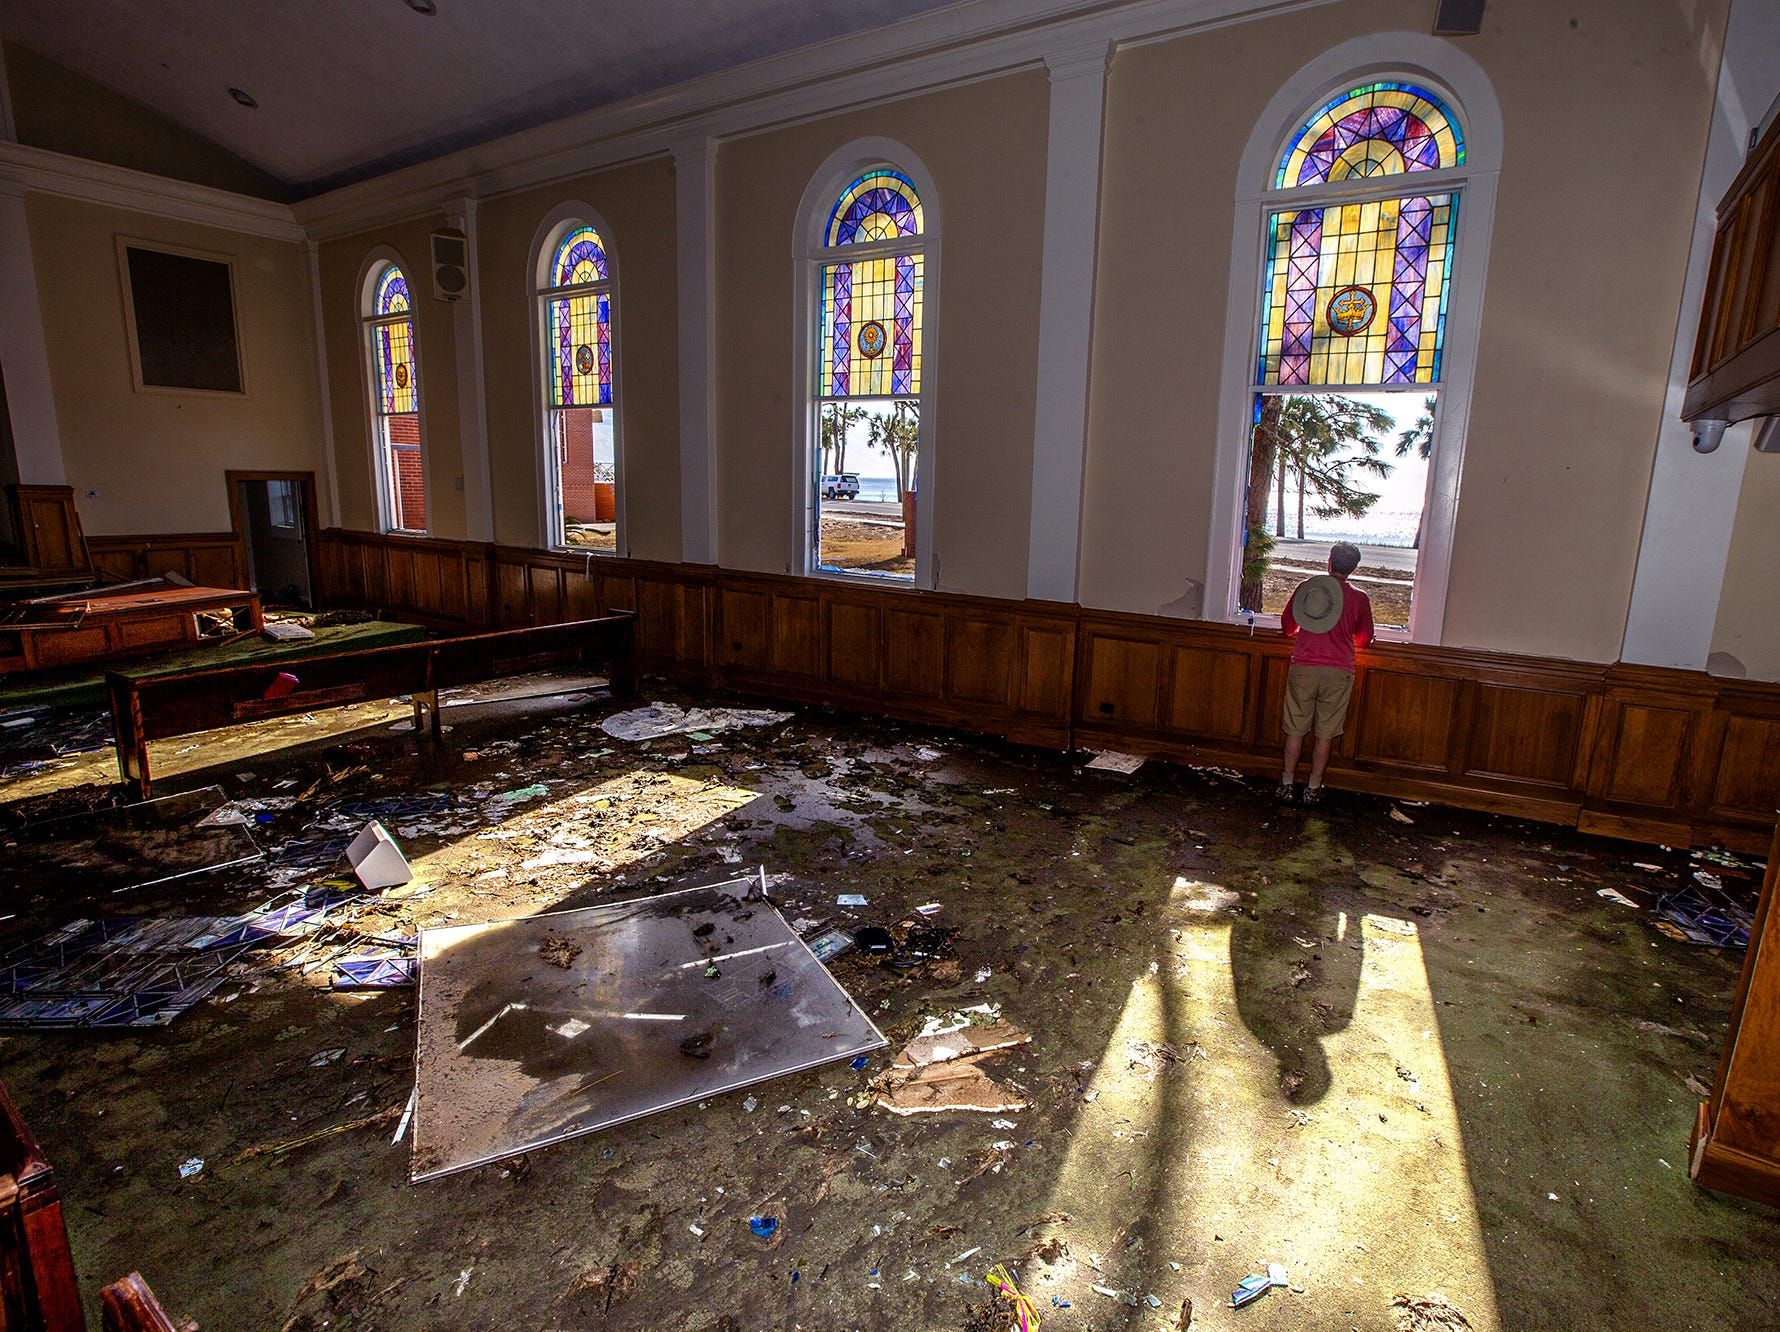 Pastor Geoffrey Lentz looks out at St Joe Bay from his sanctuary of the First United Methodist Church after it was gutted by the storm surge from Hurricane Michael on Oct. 14, 2018 in Port Saint Joe, Fla.  The surge took out the bottom half all the stain glass windows.